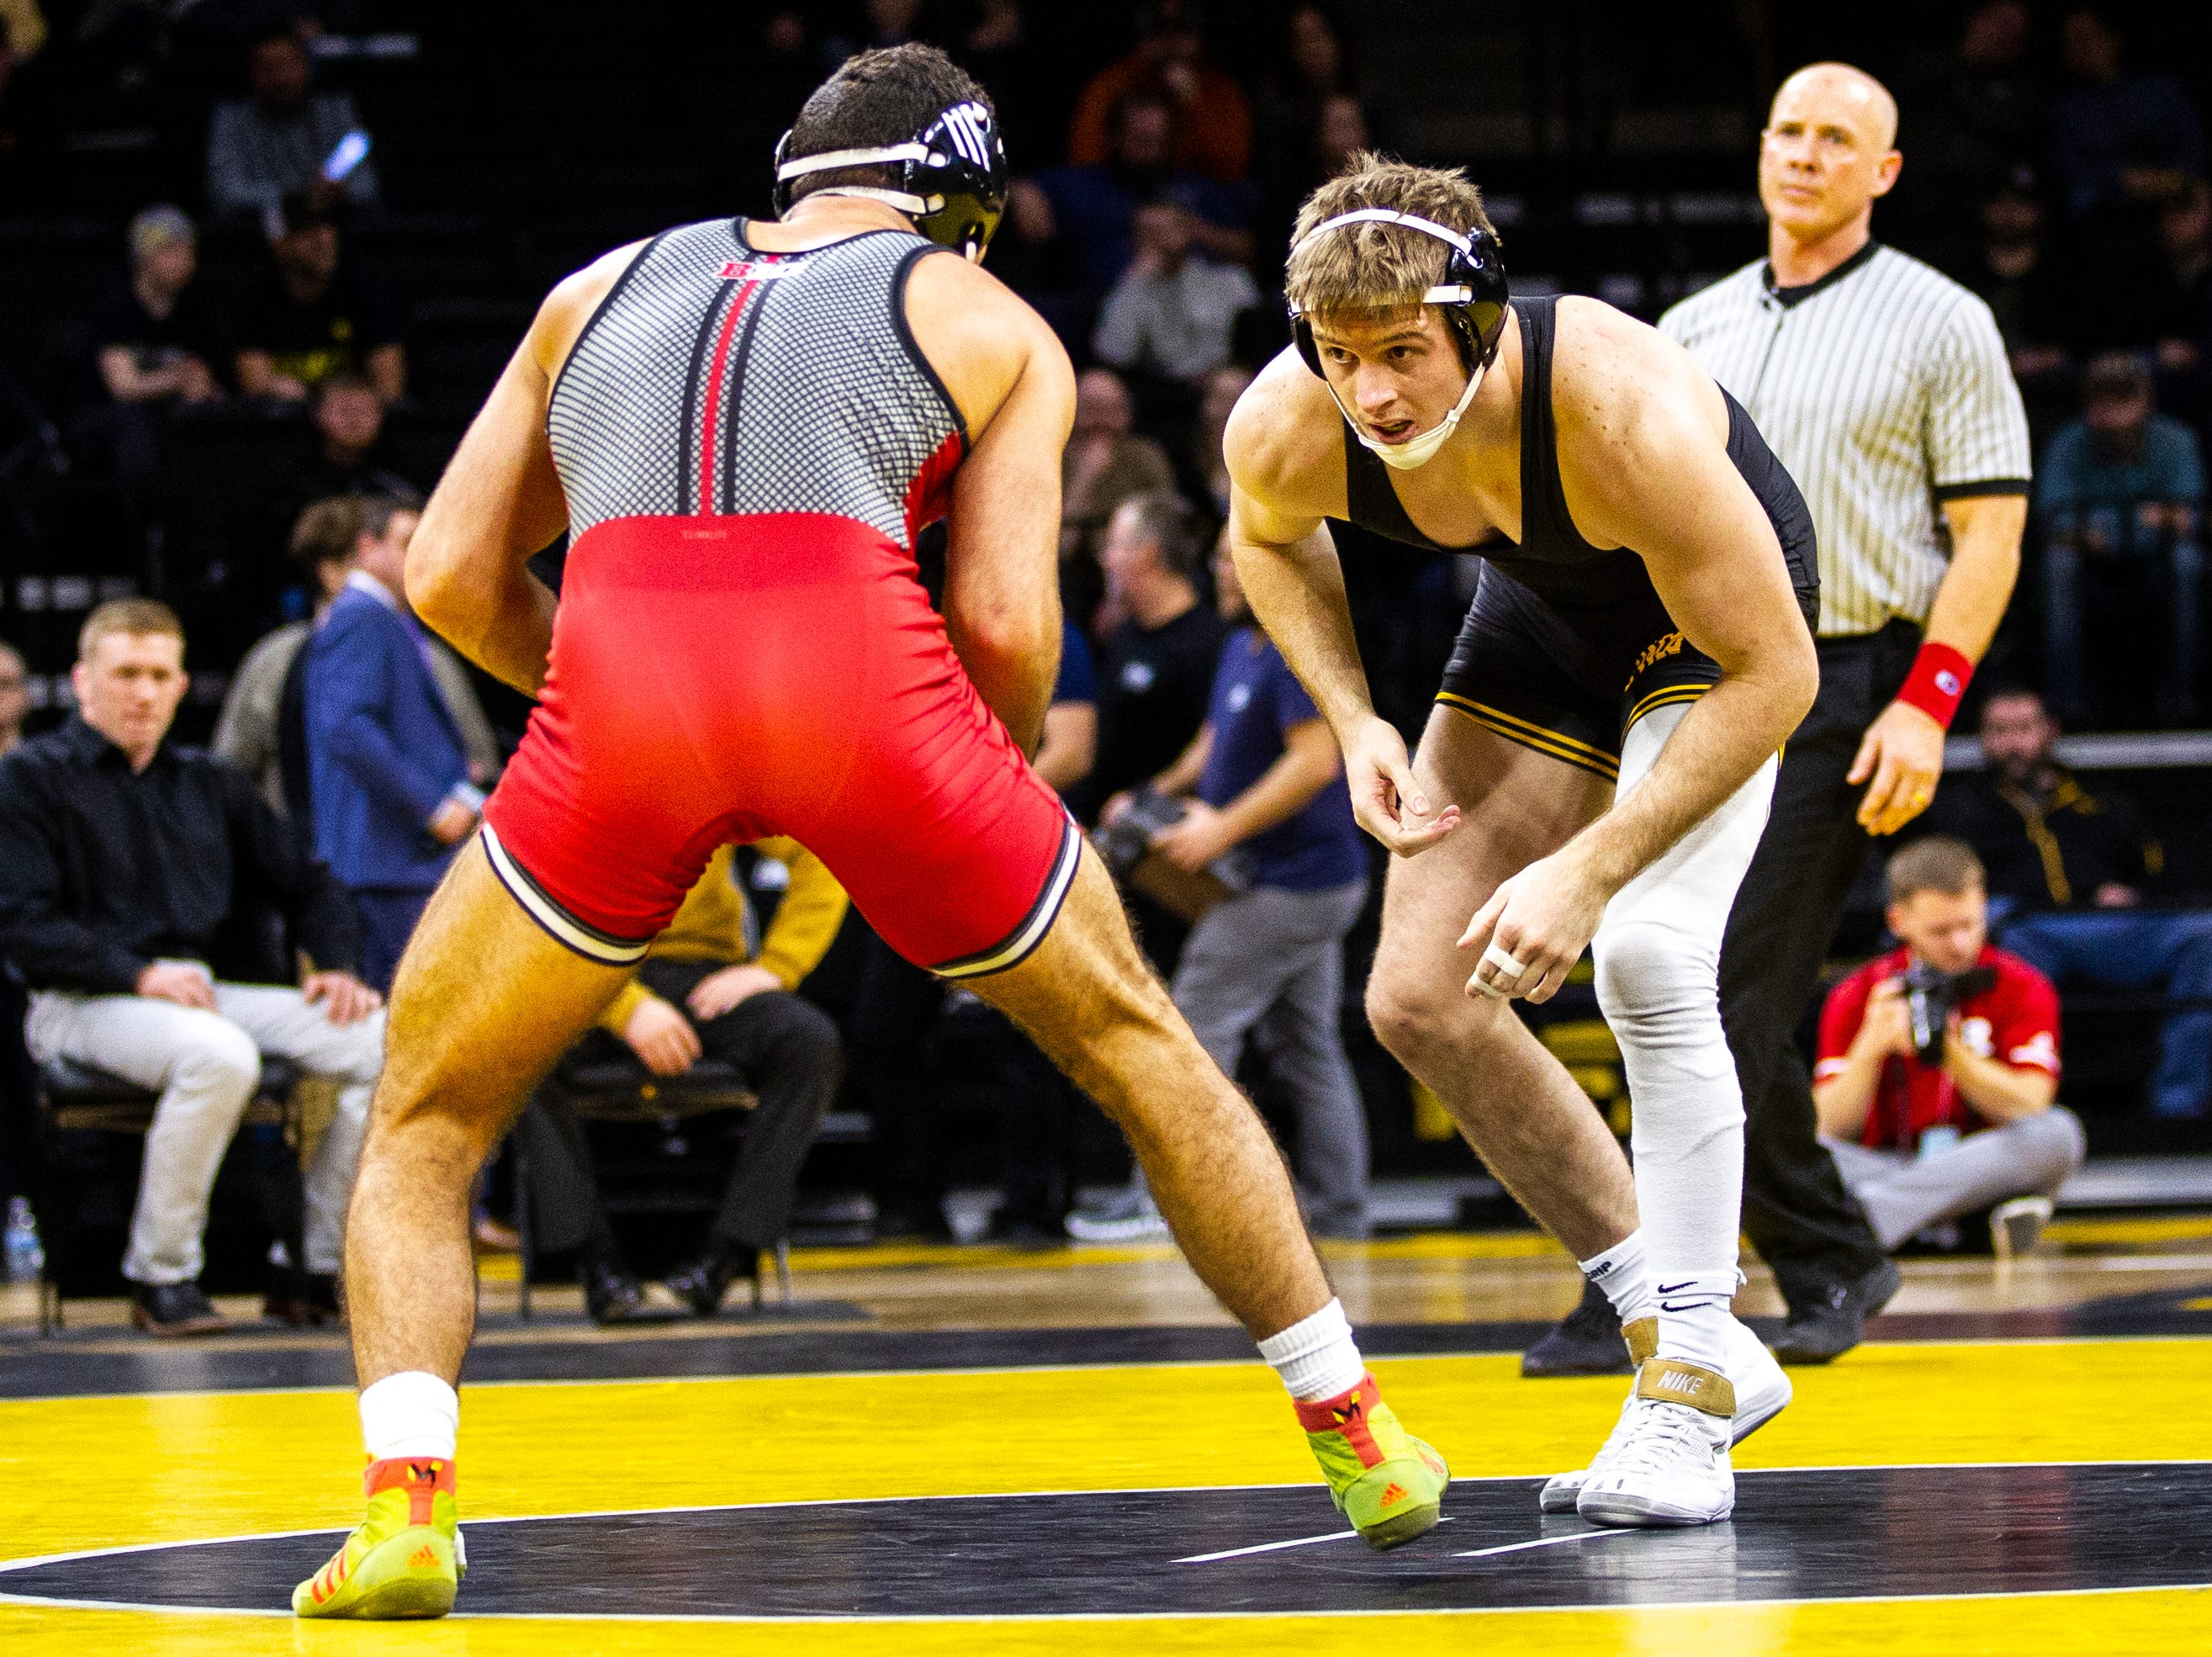 Iowa's Mitch Bowman, right, wrestles Rutgers' Joseph Grello at 174 during a NCAA Big Ten Conference wrestling dual on Friday, Jan. 18, 2019, at Carver-Hawkeye Arena in Iowa City, Iowa.